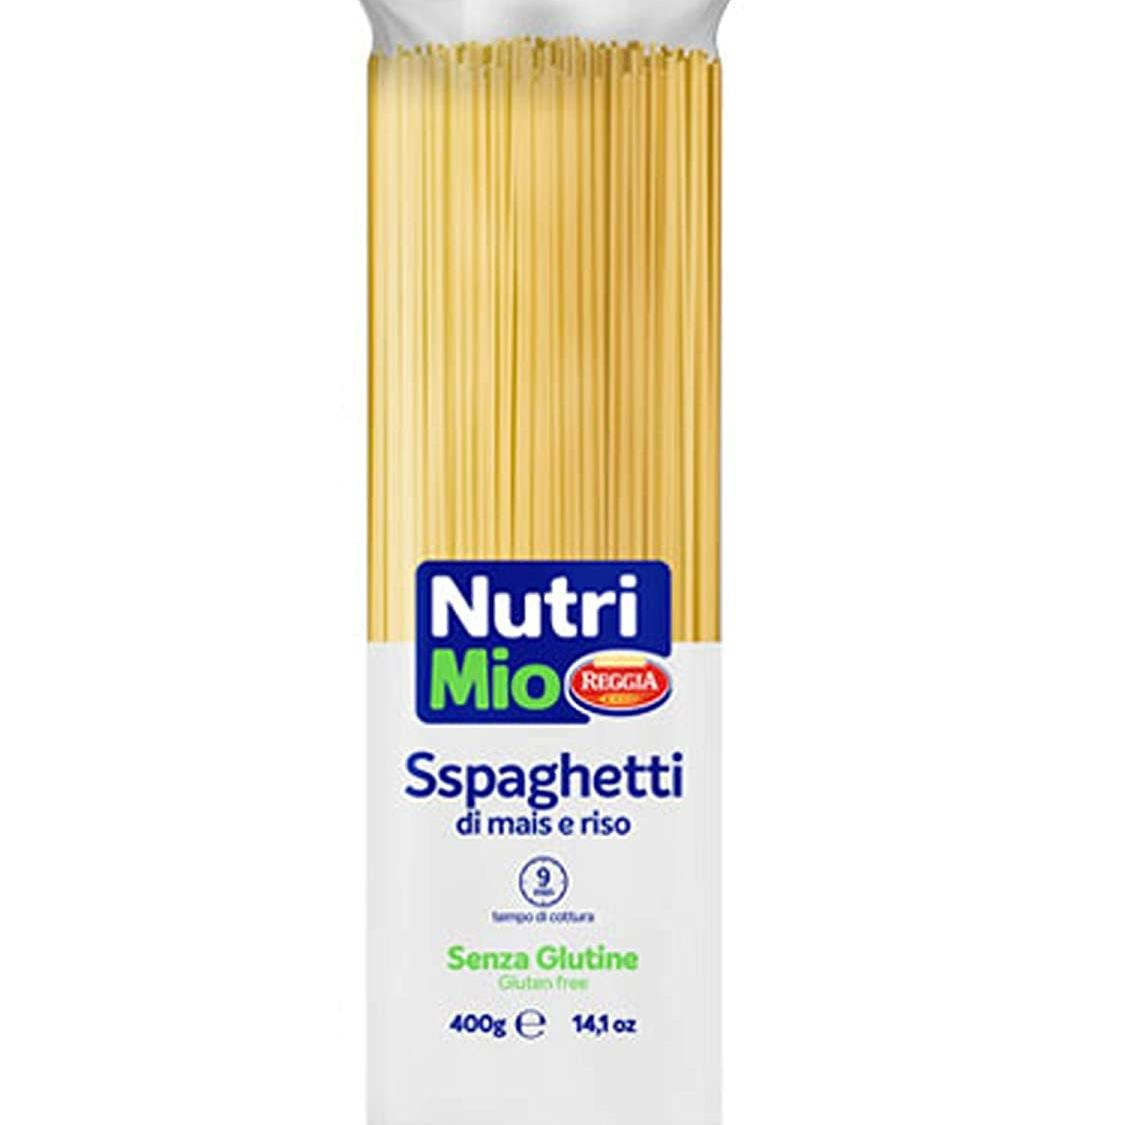 Packet of spaghetti